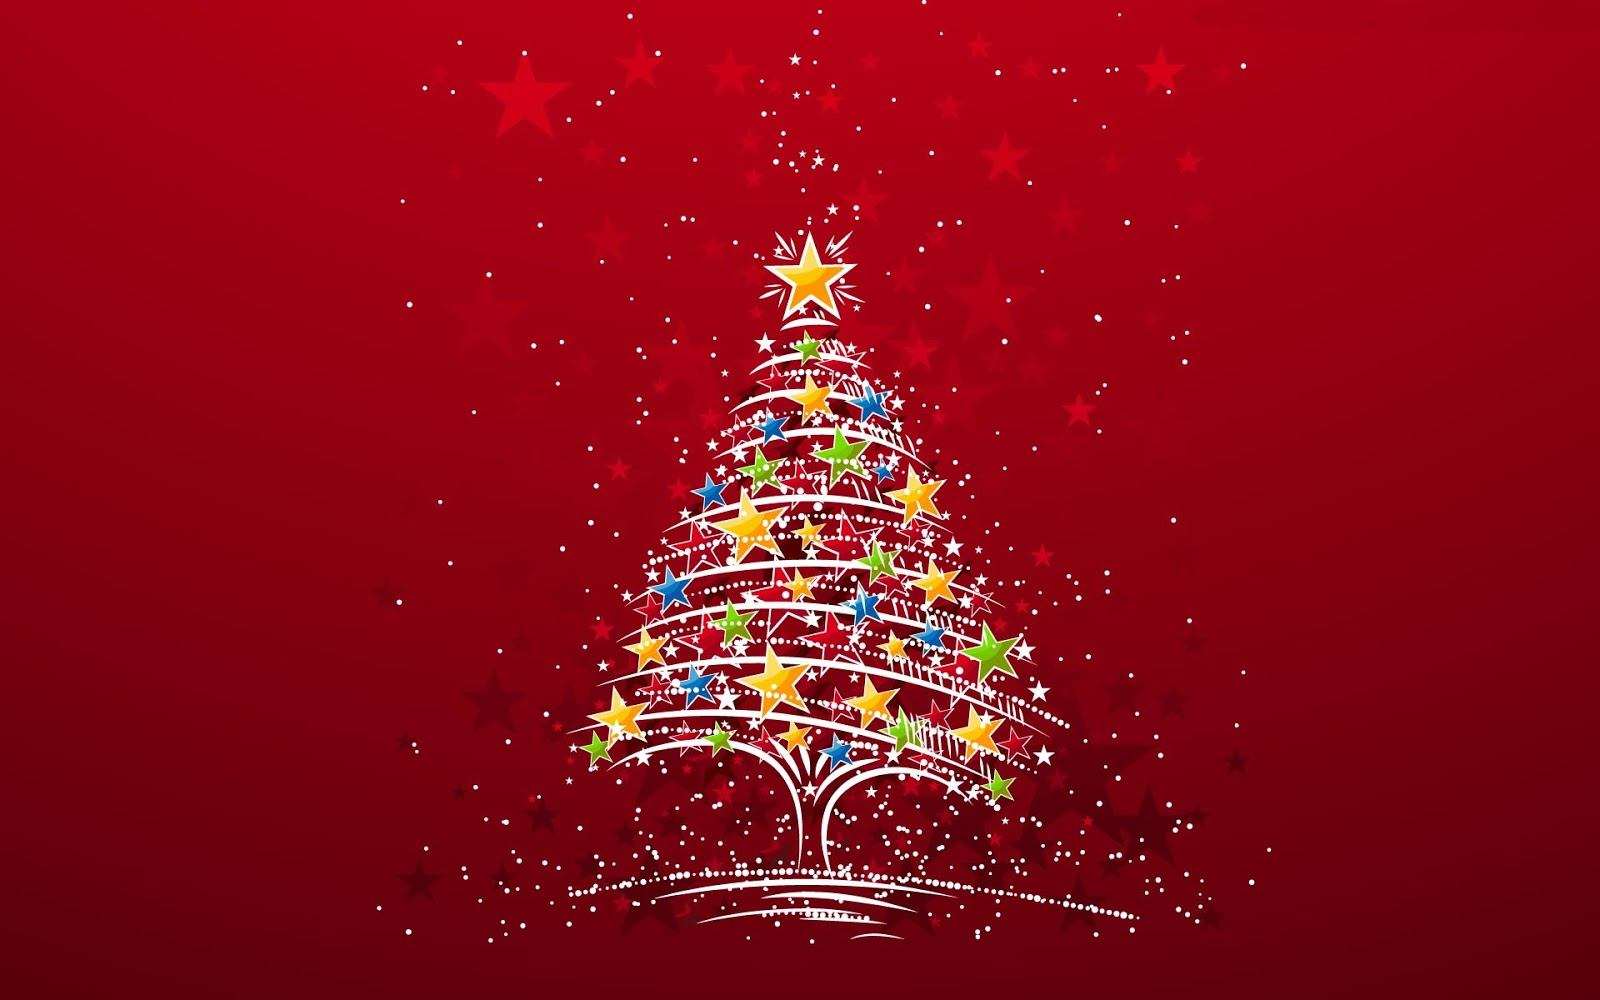 trololo blogg: Hd Xmas Wallpapers For Mac